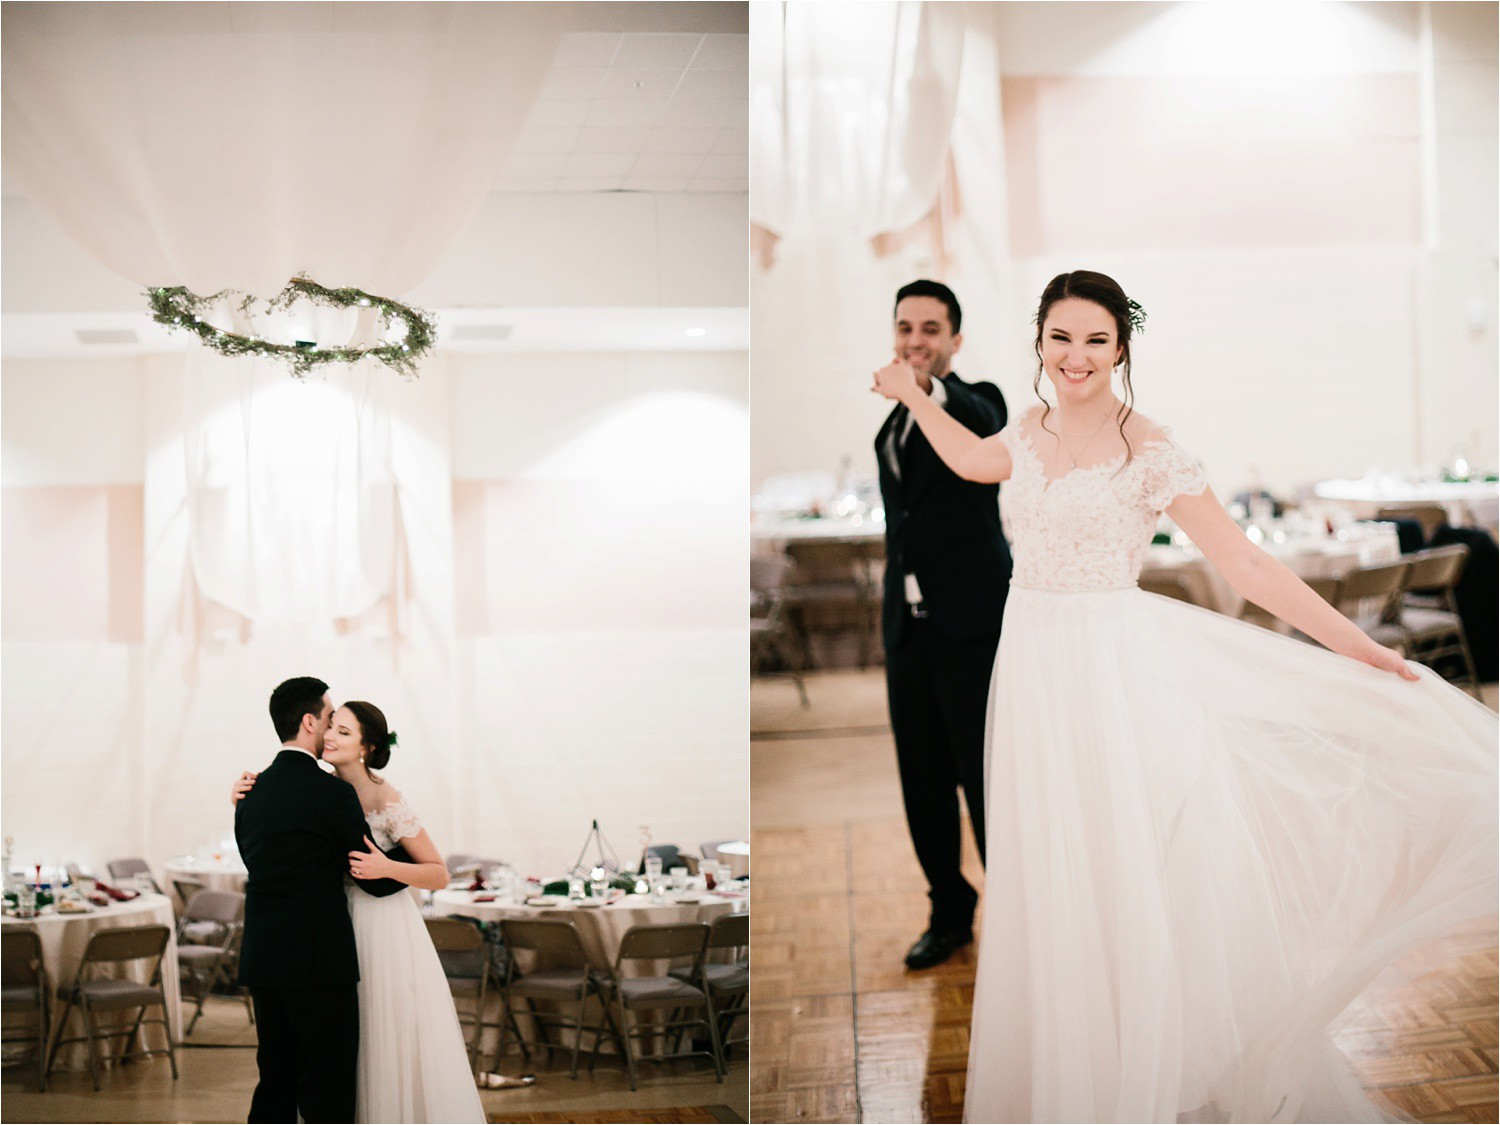 Alaina + Josh __ a wintertime wedding in Houston, TX with Christmas accents and a BHLDN dress by North Texas Wedding Photographer Rachel Meagan Photography _ 92